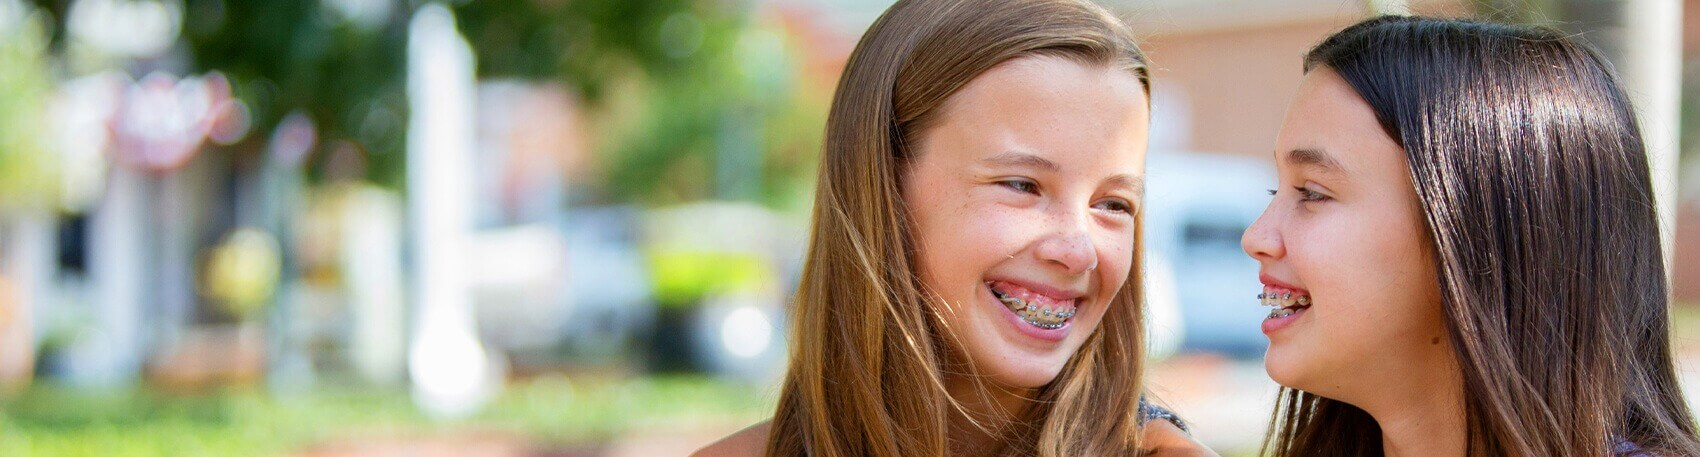 two smiling girls with braces